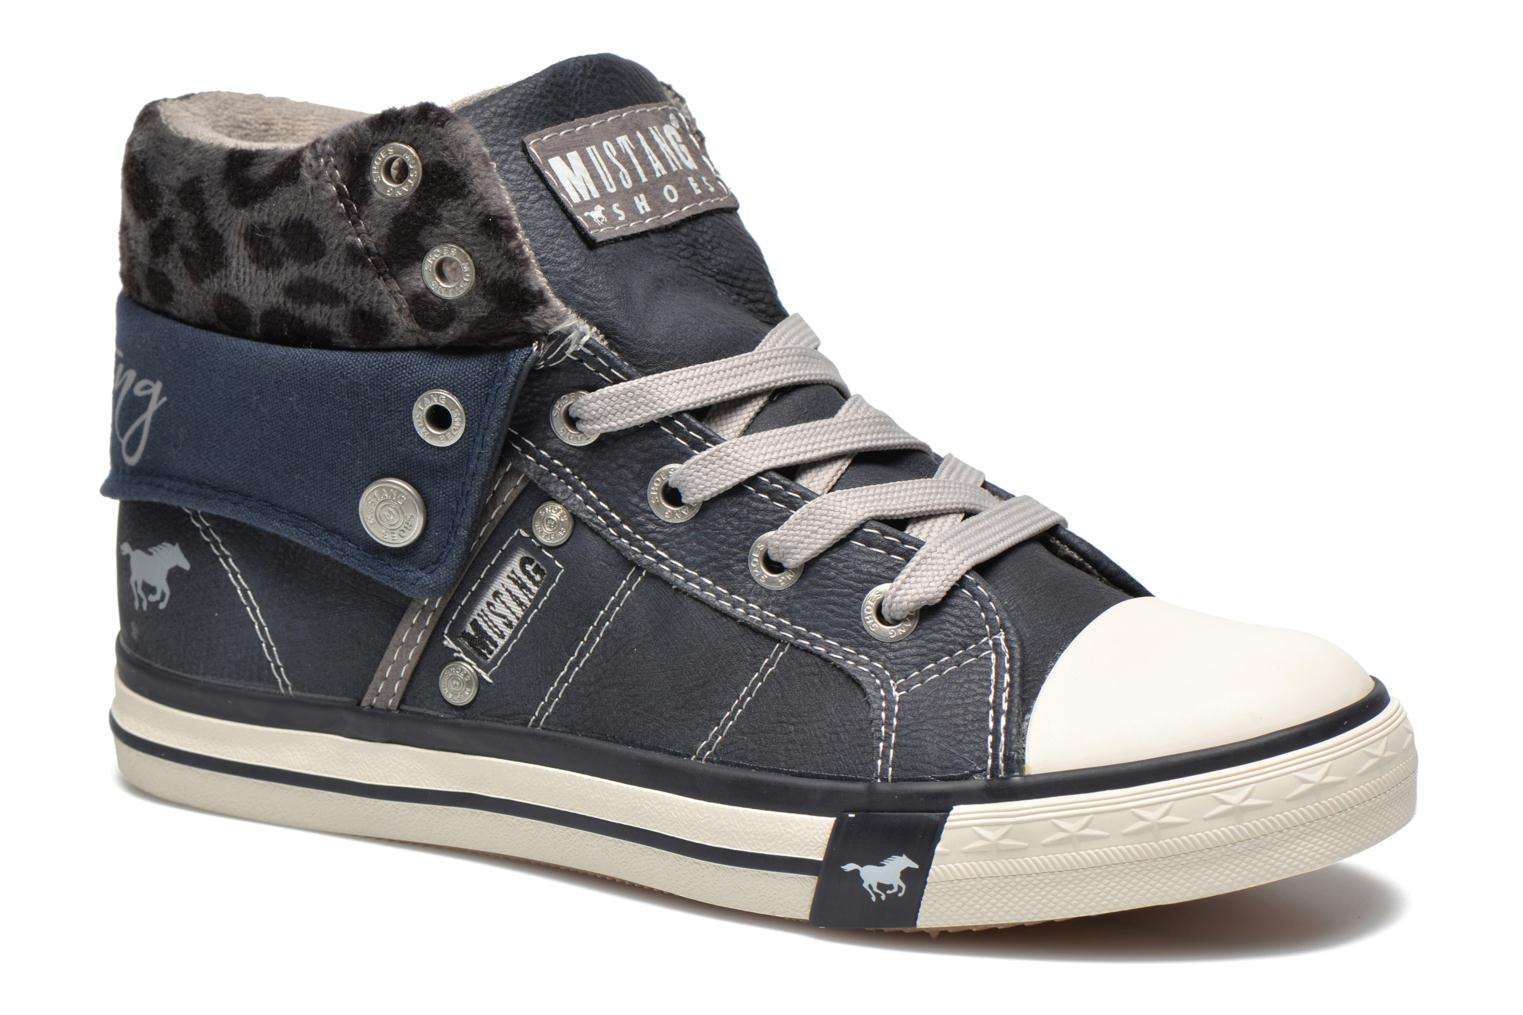 Sneakers Elena by Mustang shoes